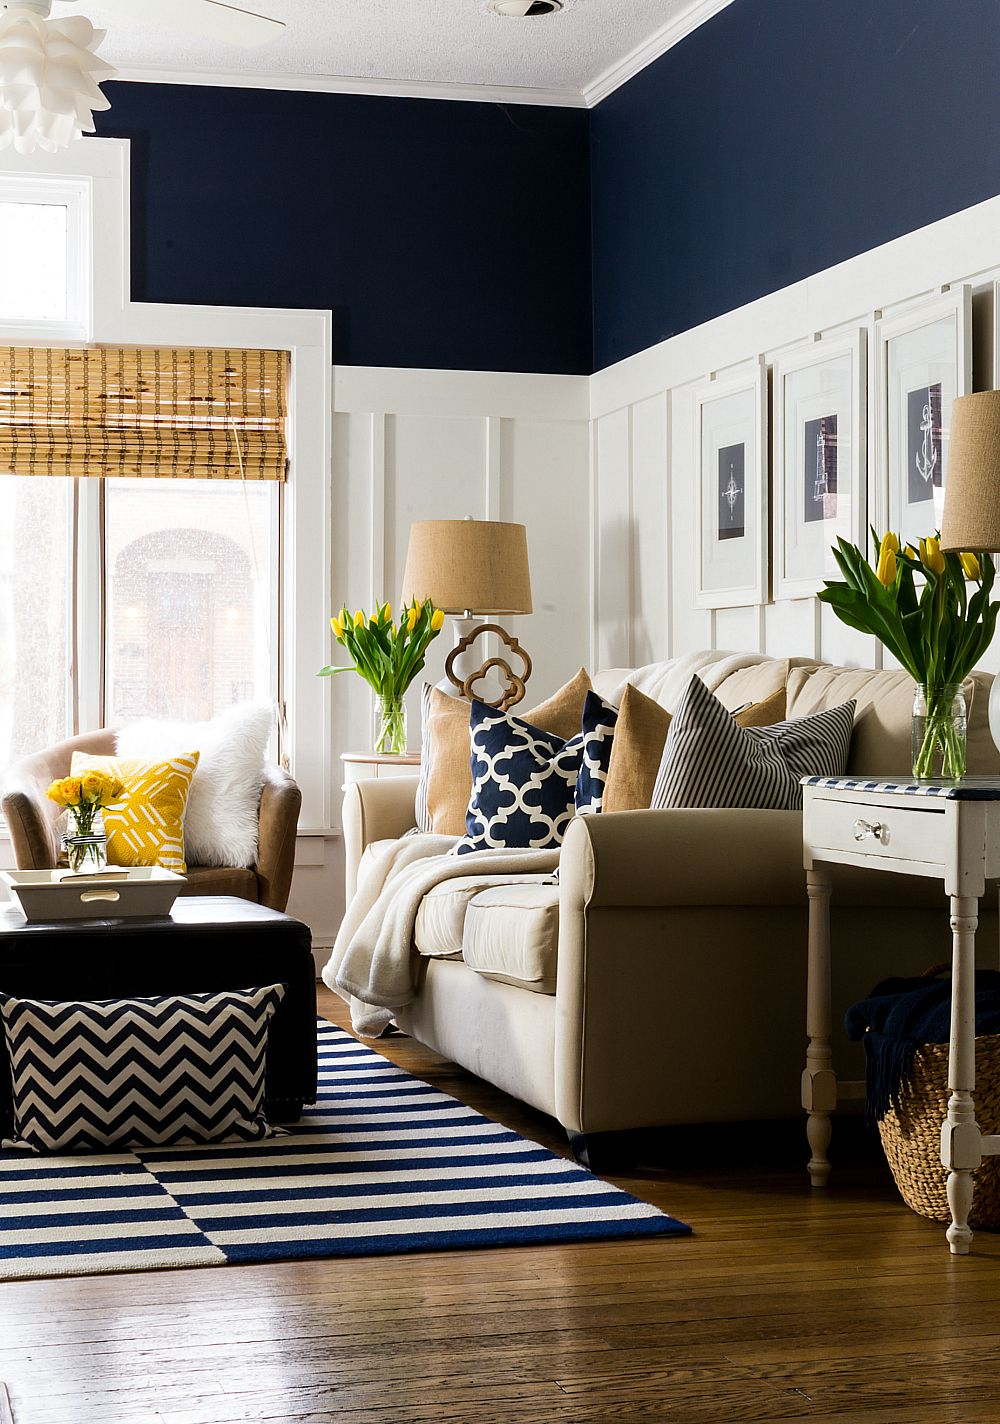 spring decor ideas in navy and yellow | navy and spring